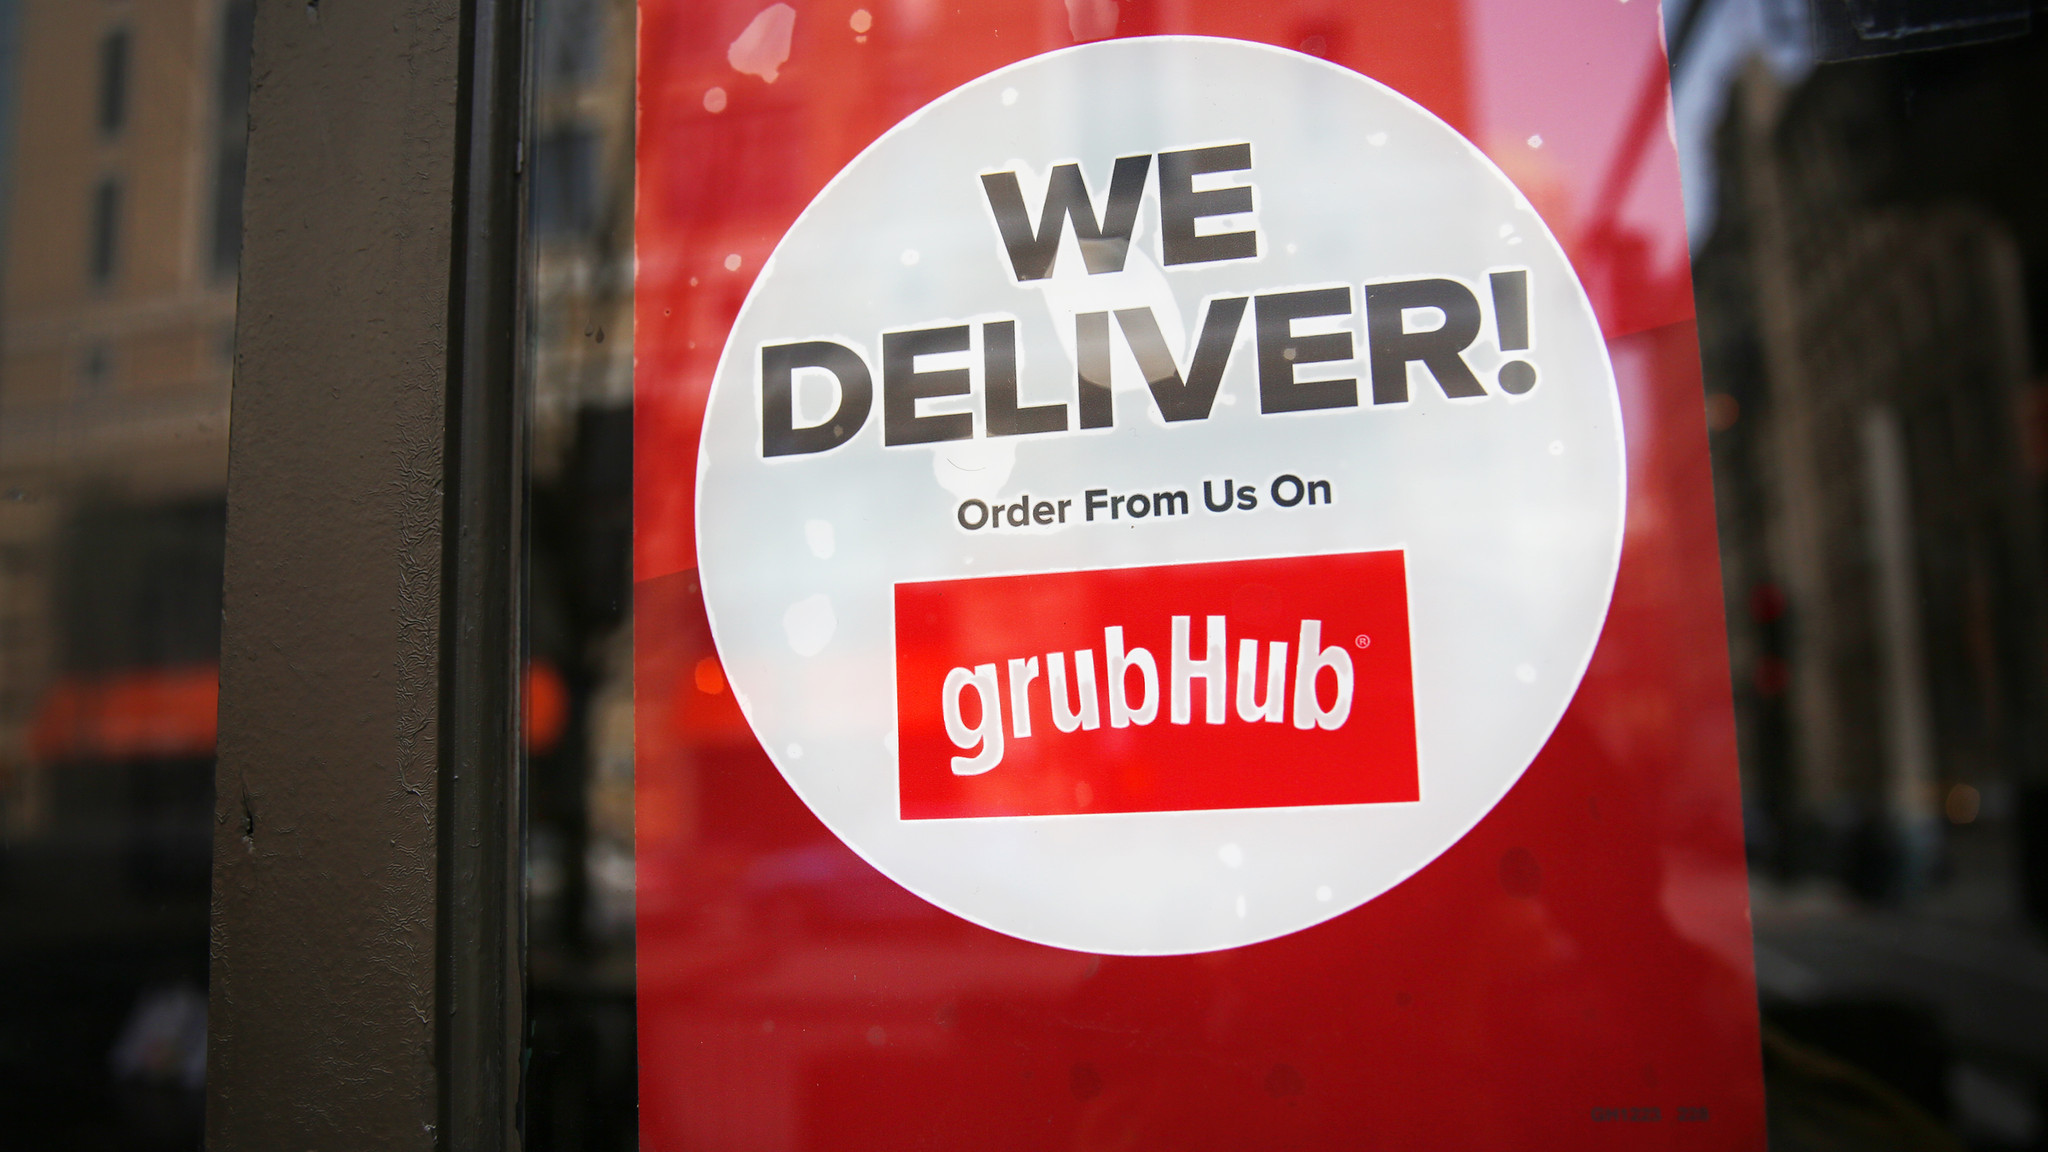 Food Delivery Similar To Grubhub